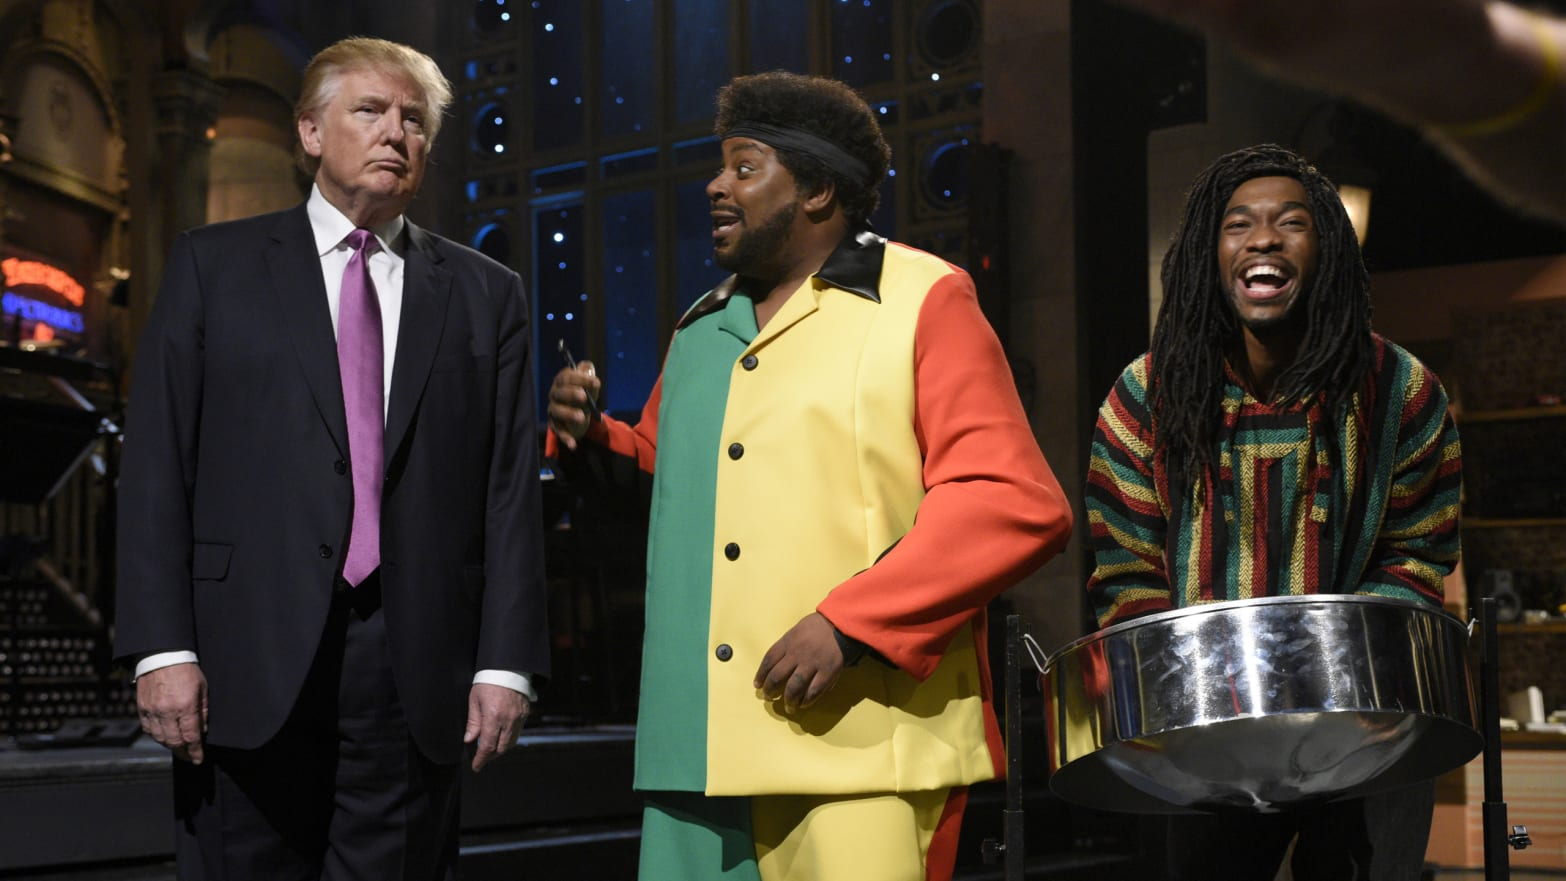 Jay Pharoah: When Trump Hosted SNL 'Nobody Would Stand Next to Him'